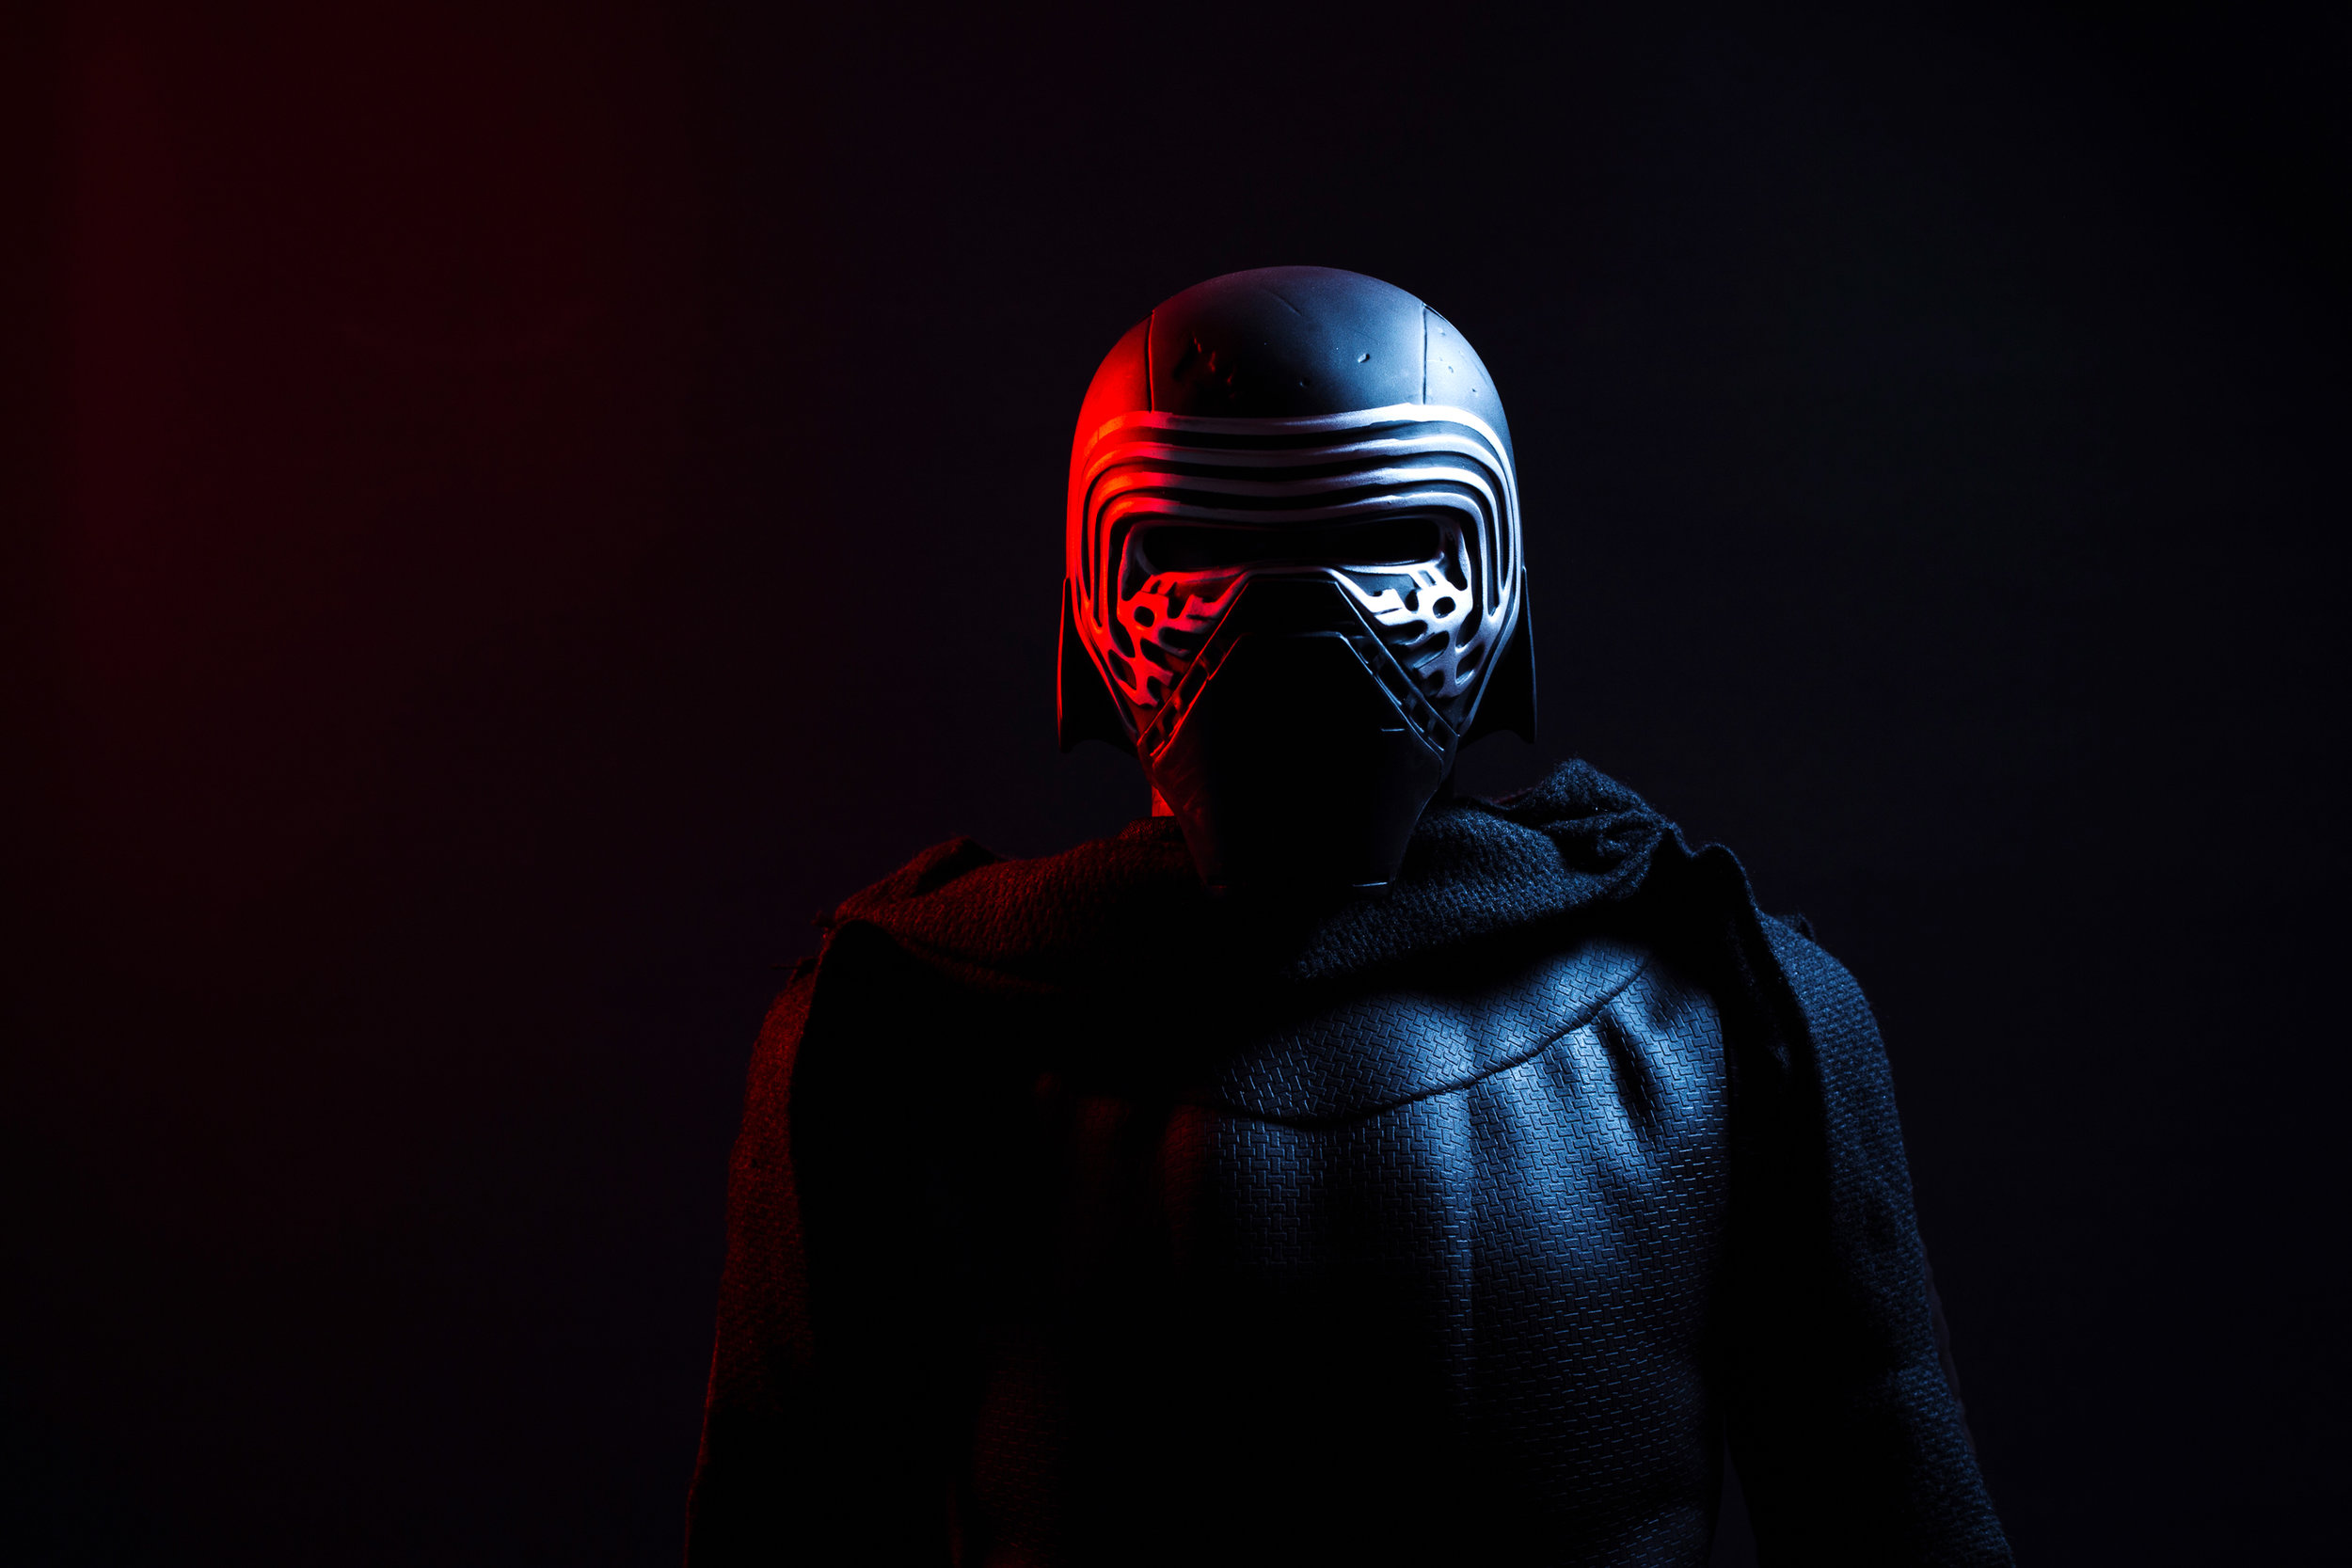 kylo-ren-photography-tips-dramatic-chamber-photography.jpg